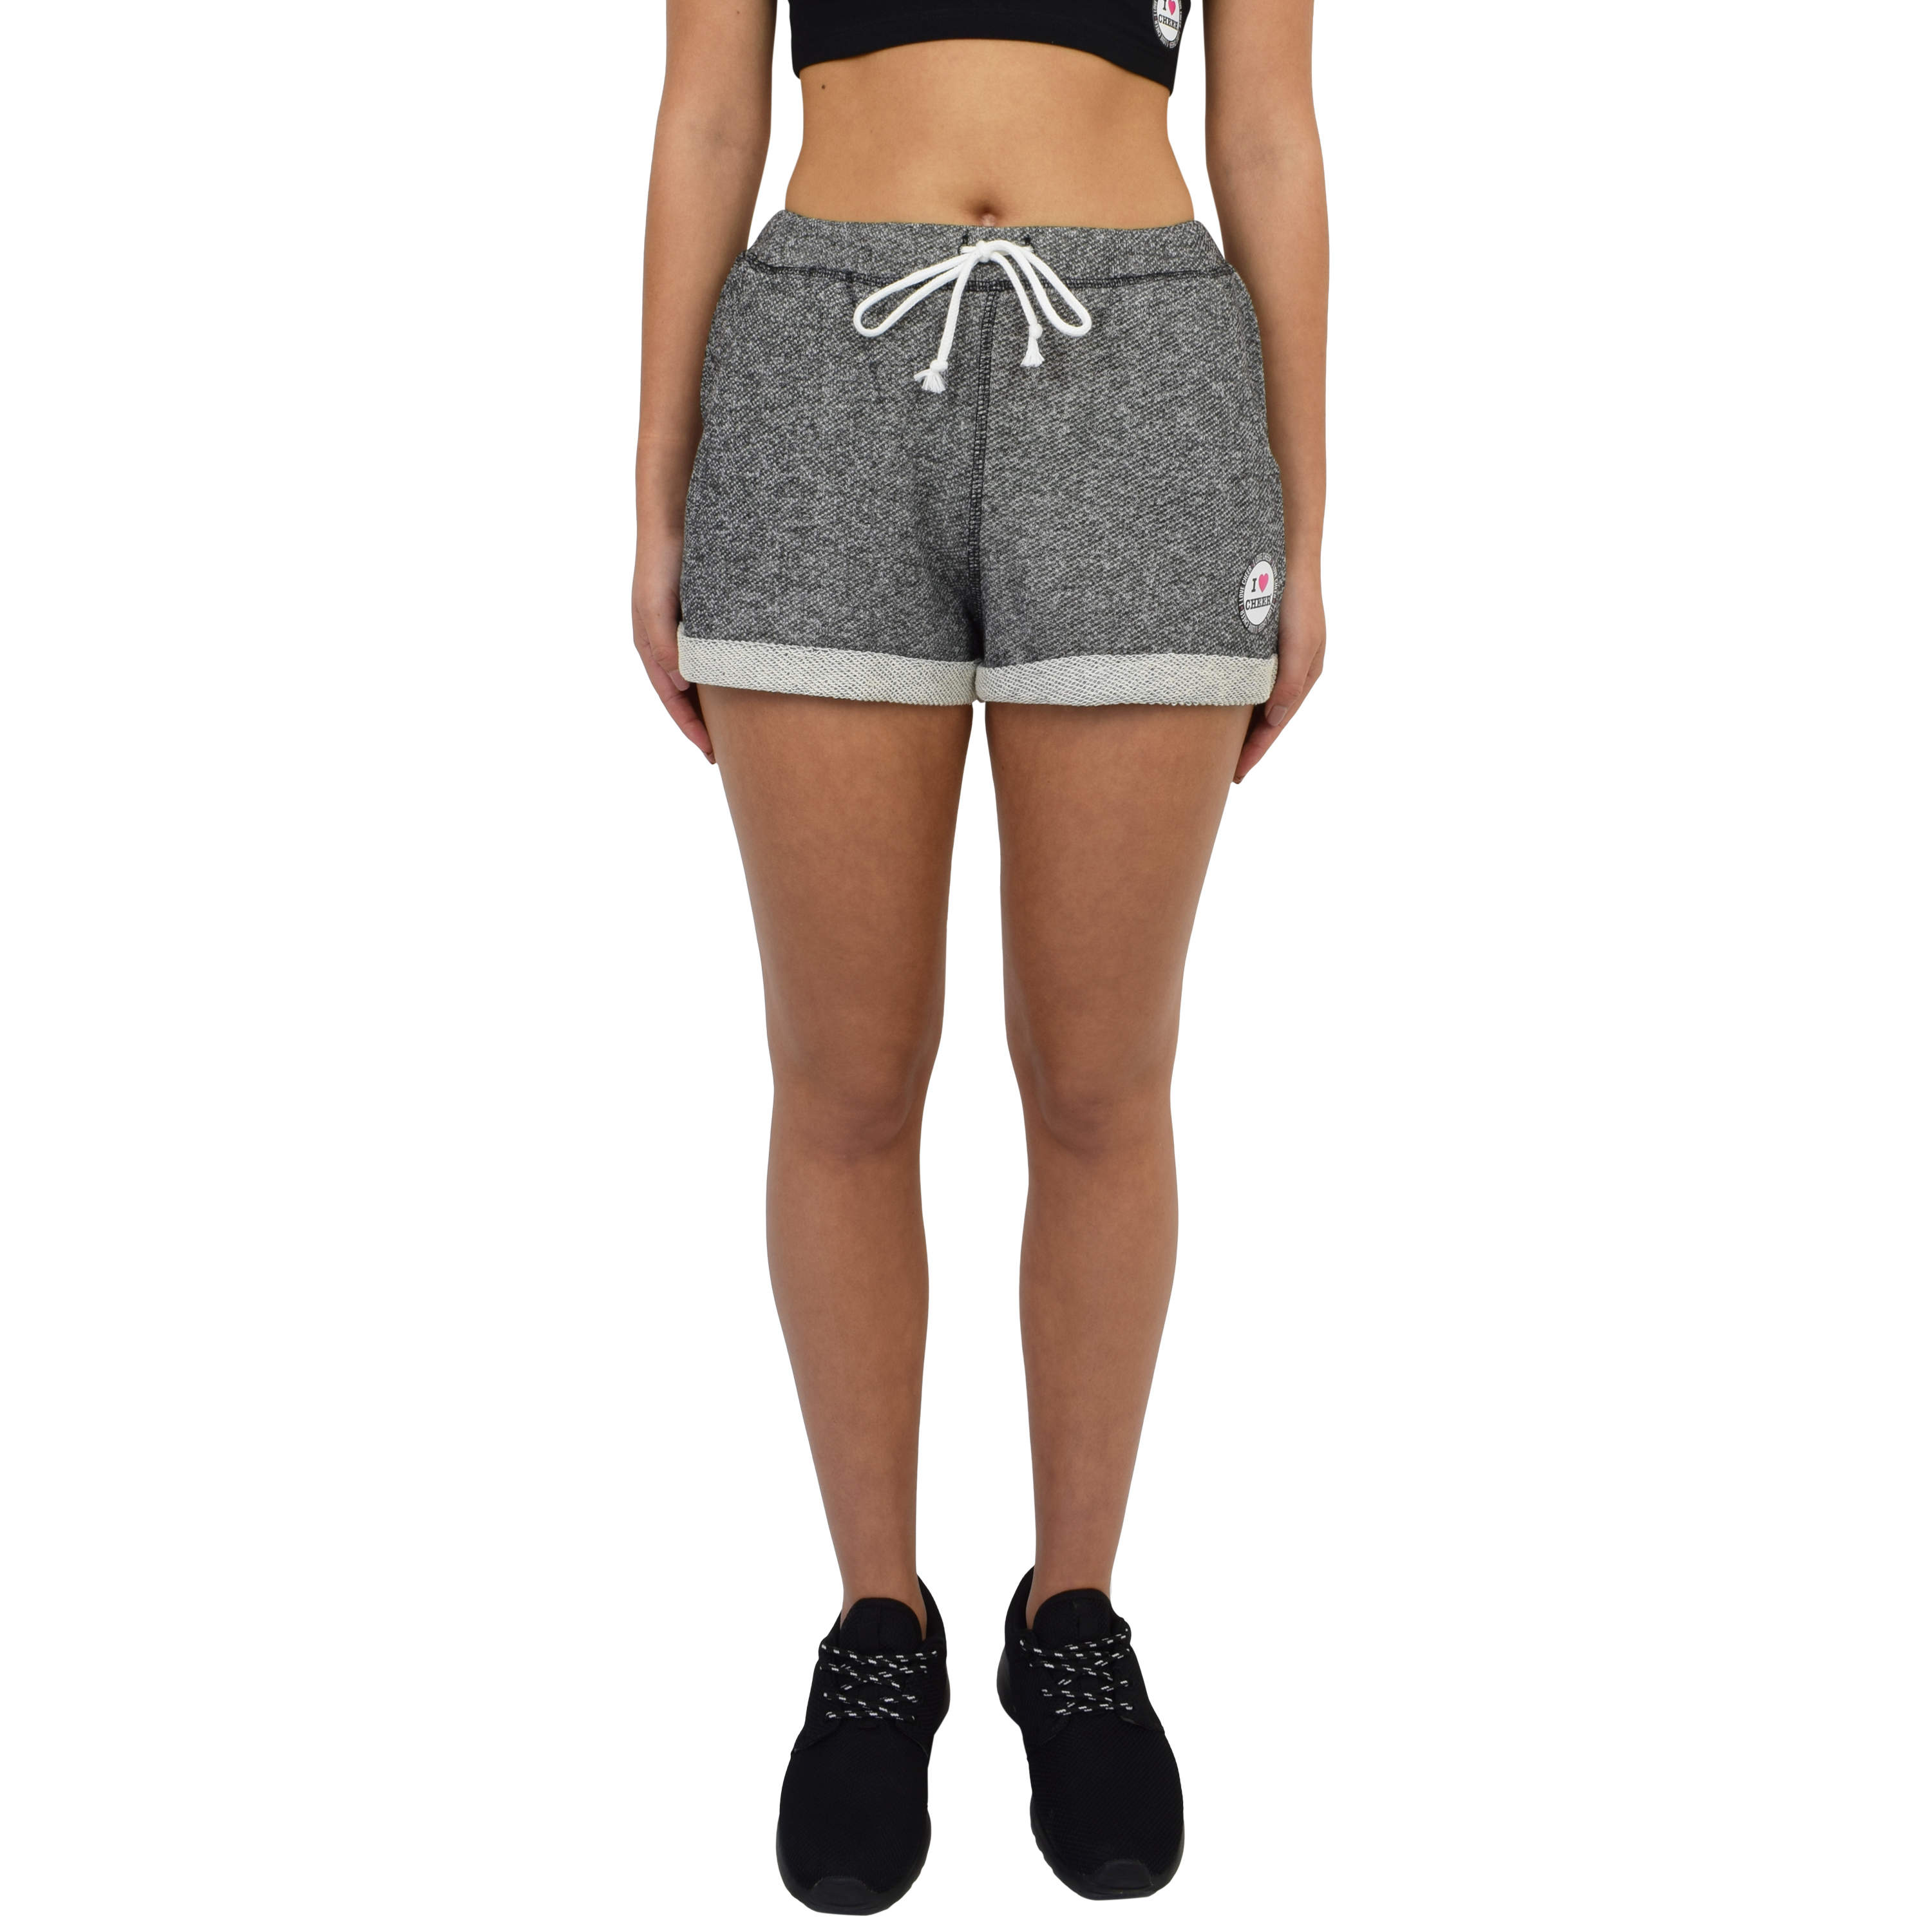 I Love Cheer® Turn Up shorts - Limited Edition (FØRPRIS 129,00)